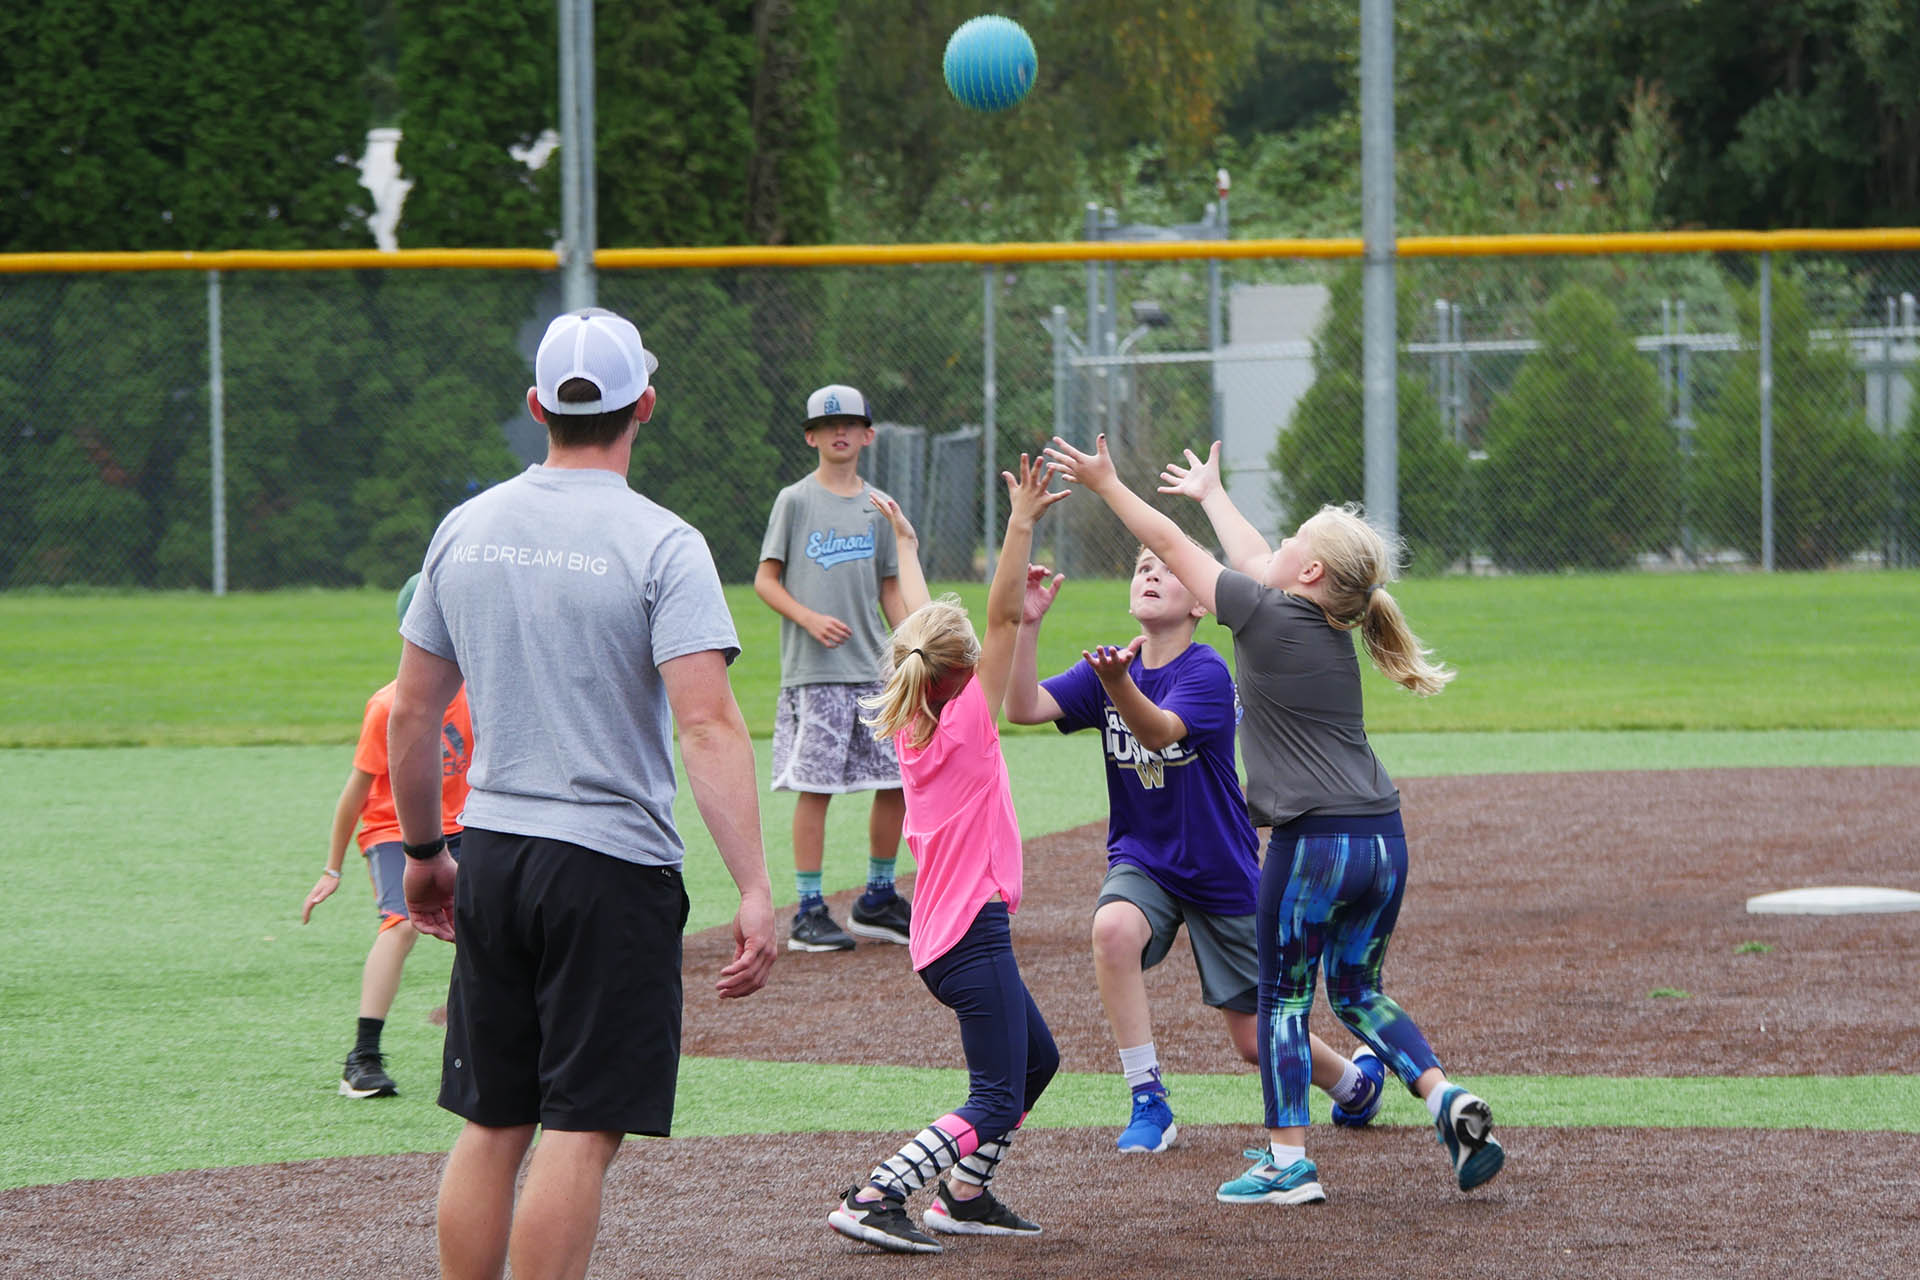 Kids competing at camp to catch a kickball